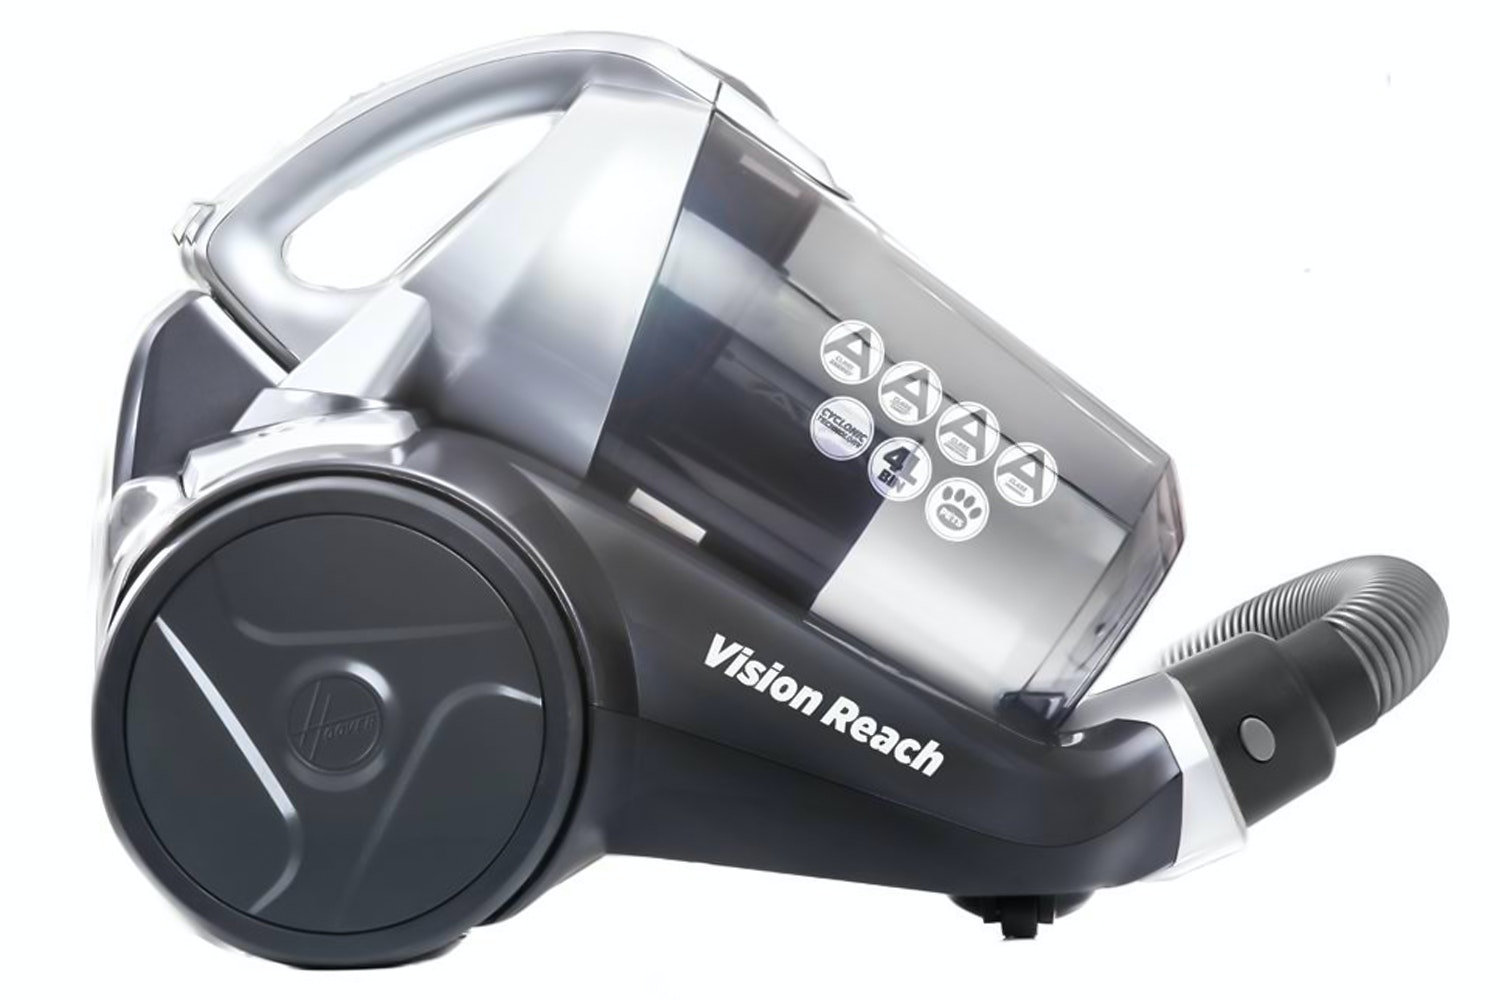 Hoover Vision Reach Bagless Cylinder Vacuum Cleaner | BF81_VS12